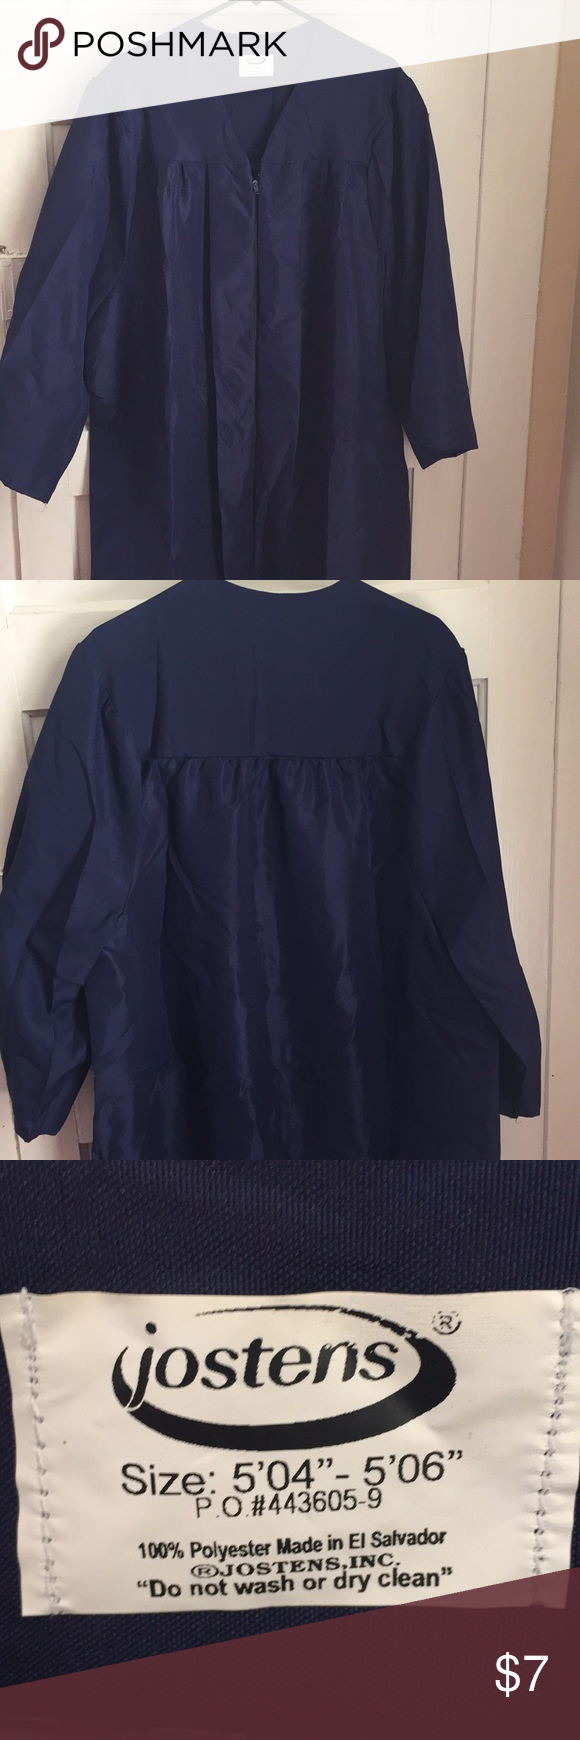 Graduation Gown - Navy Blue - Jostens | Navy blue, Gowns and Navy